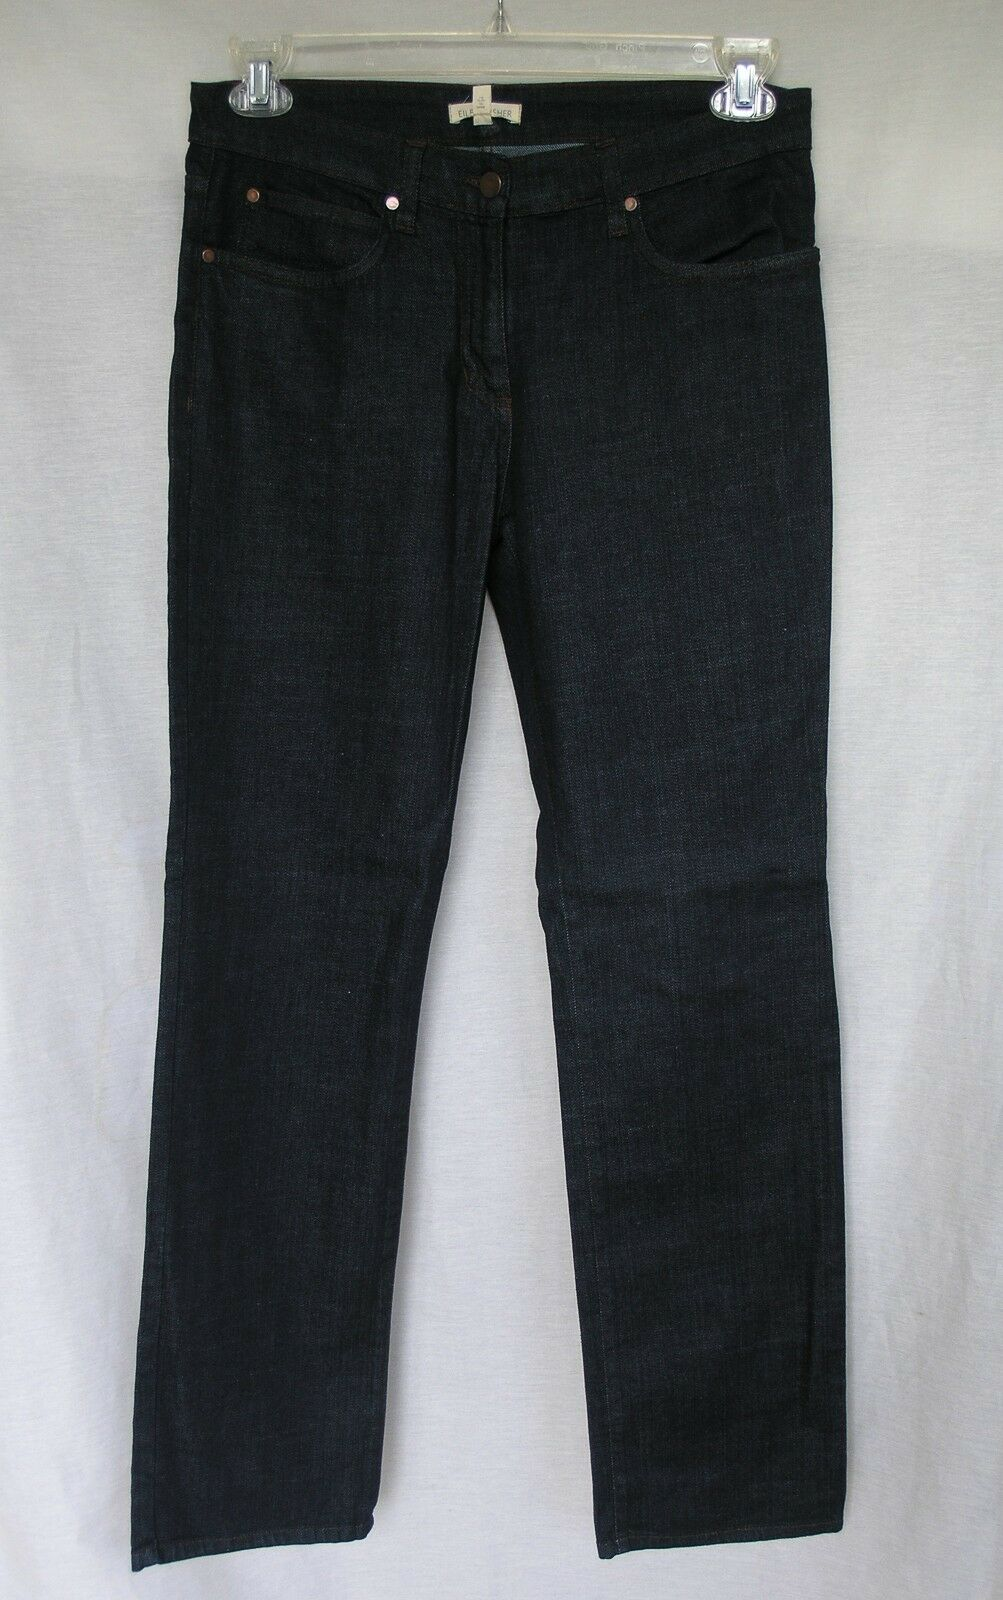 148 EILEEN FISHER ORGANIC COTTON STRETCH DENIM STRAIT JEAN RIVETS 2